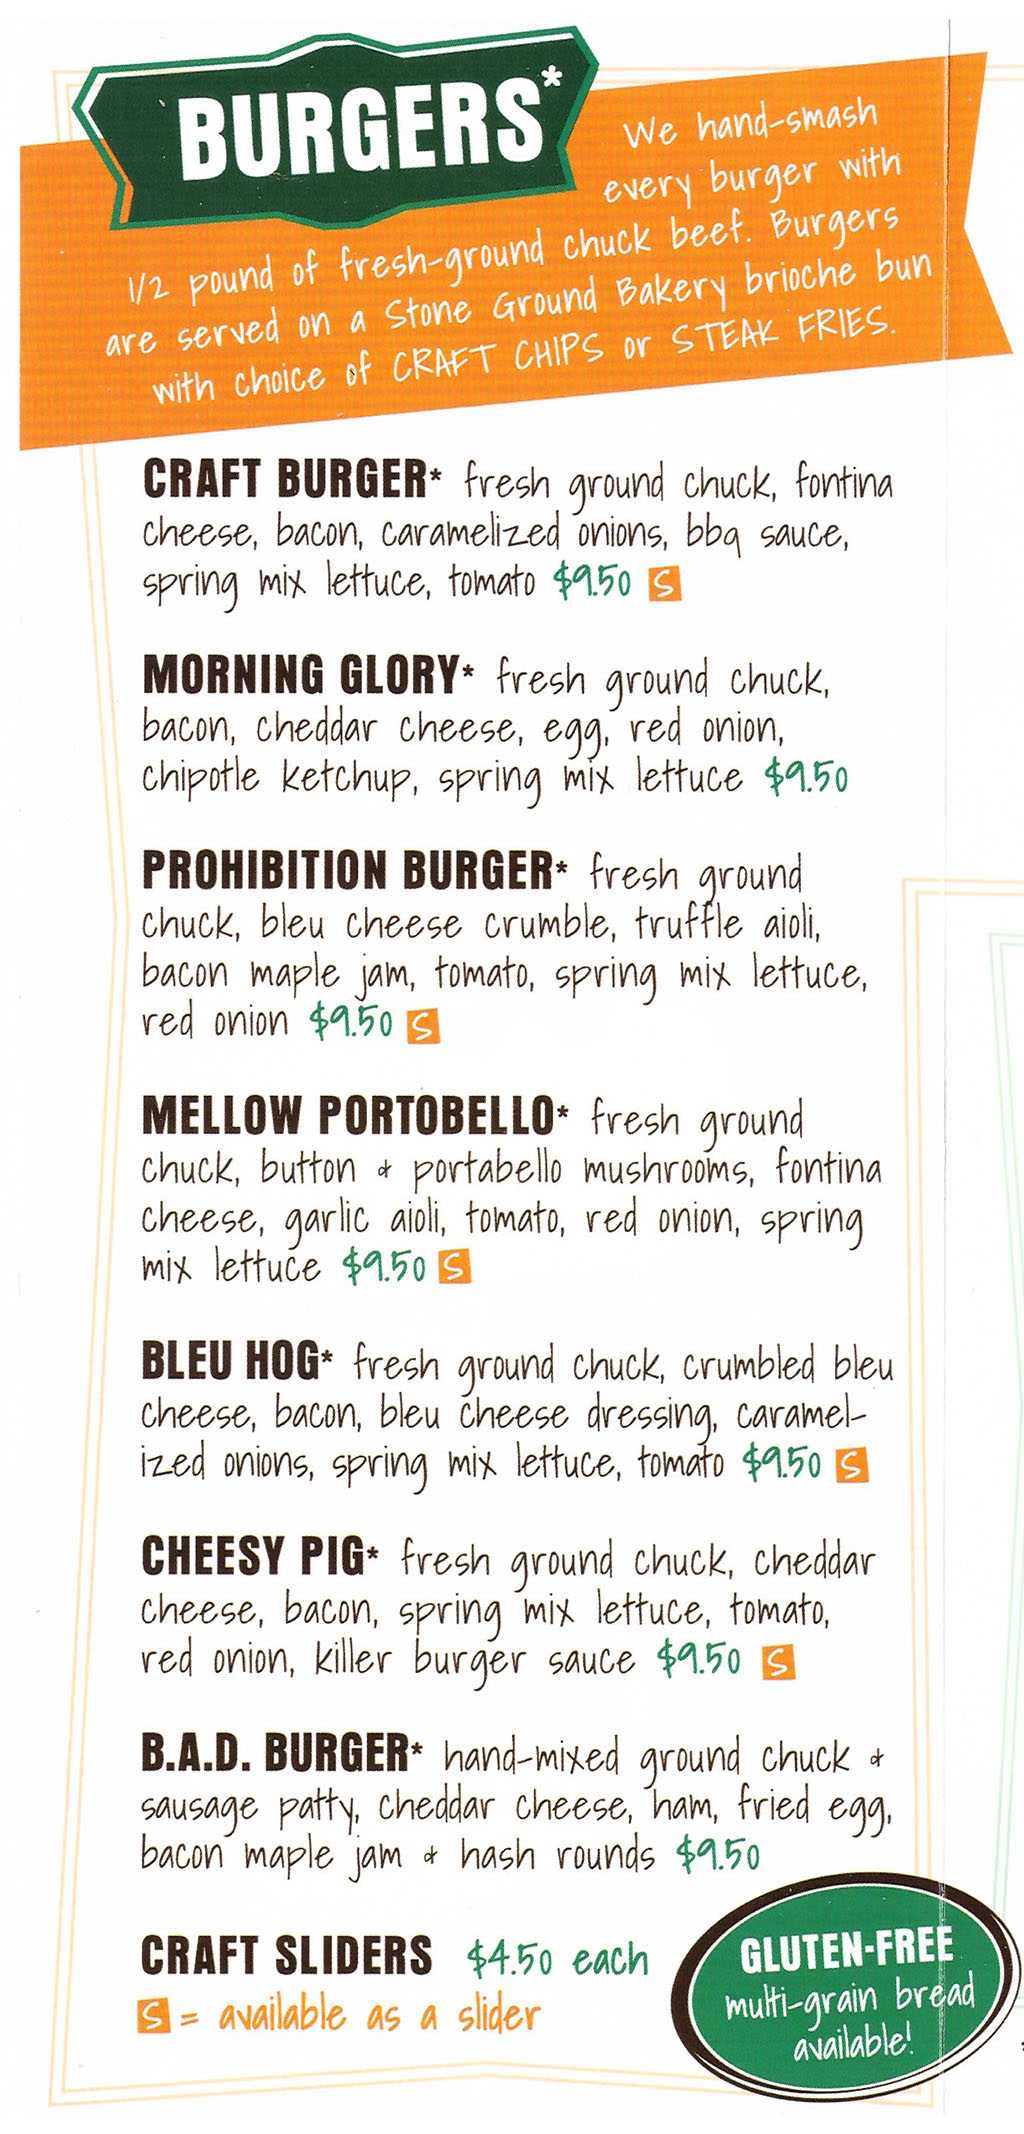 Warrens Craft Burger menu - burgers